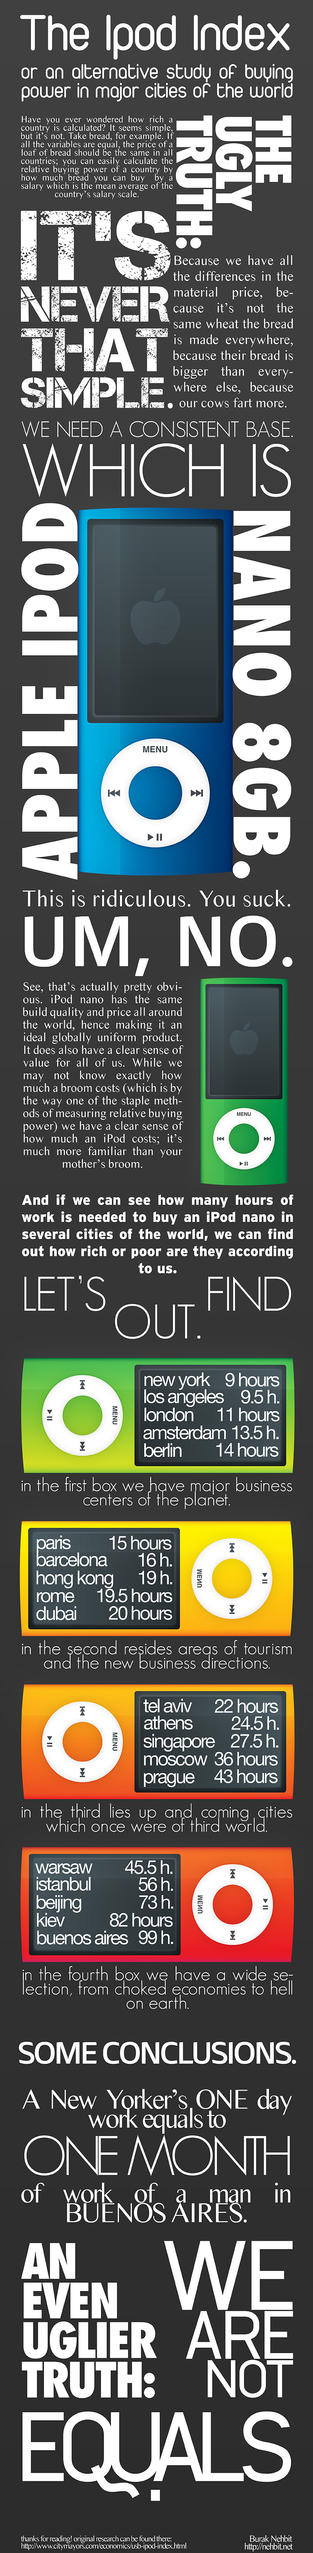 the iPod index: An Infographic by Winterfall